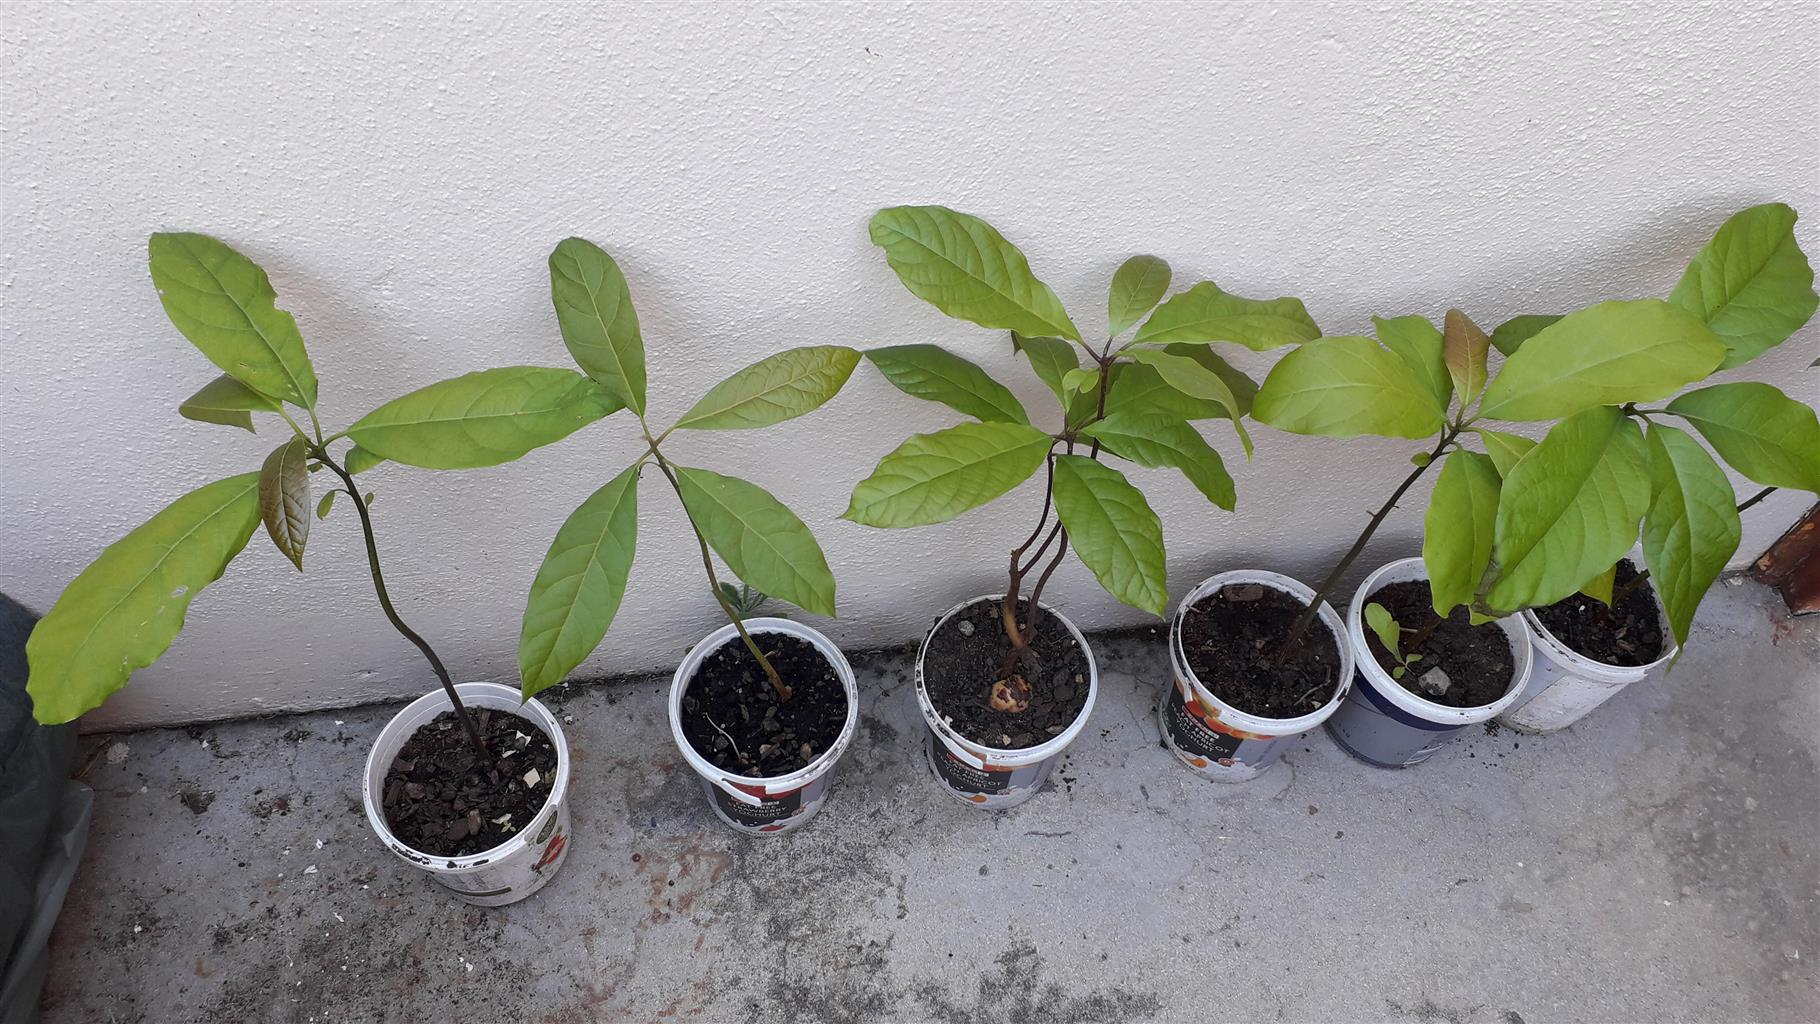 Avocado plants for sale at R30 each. Organically grown.